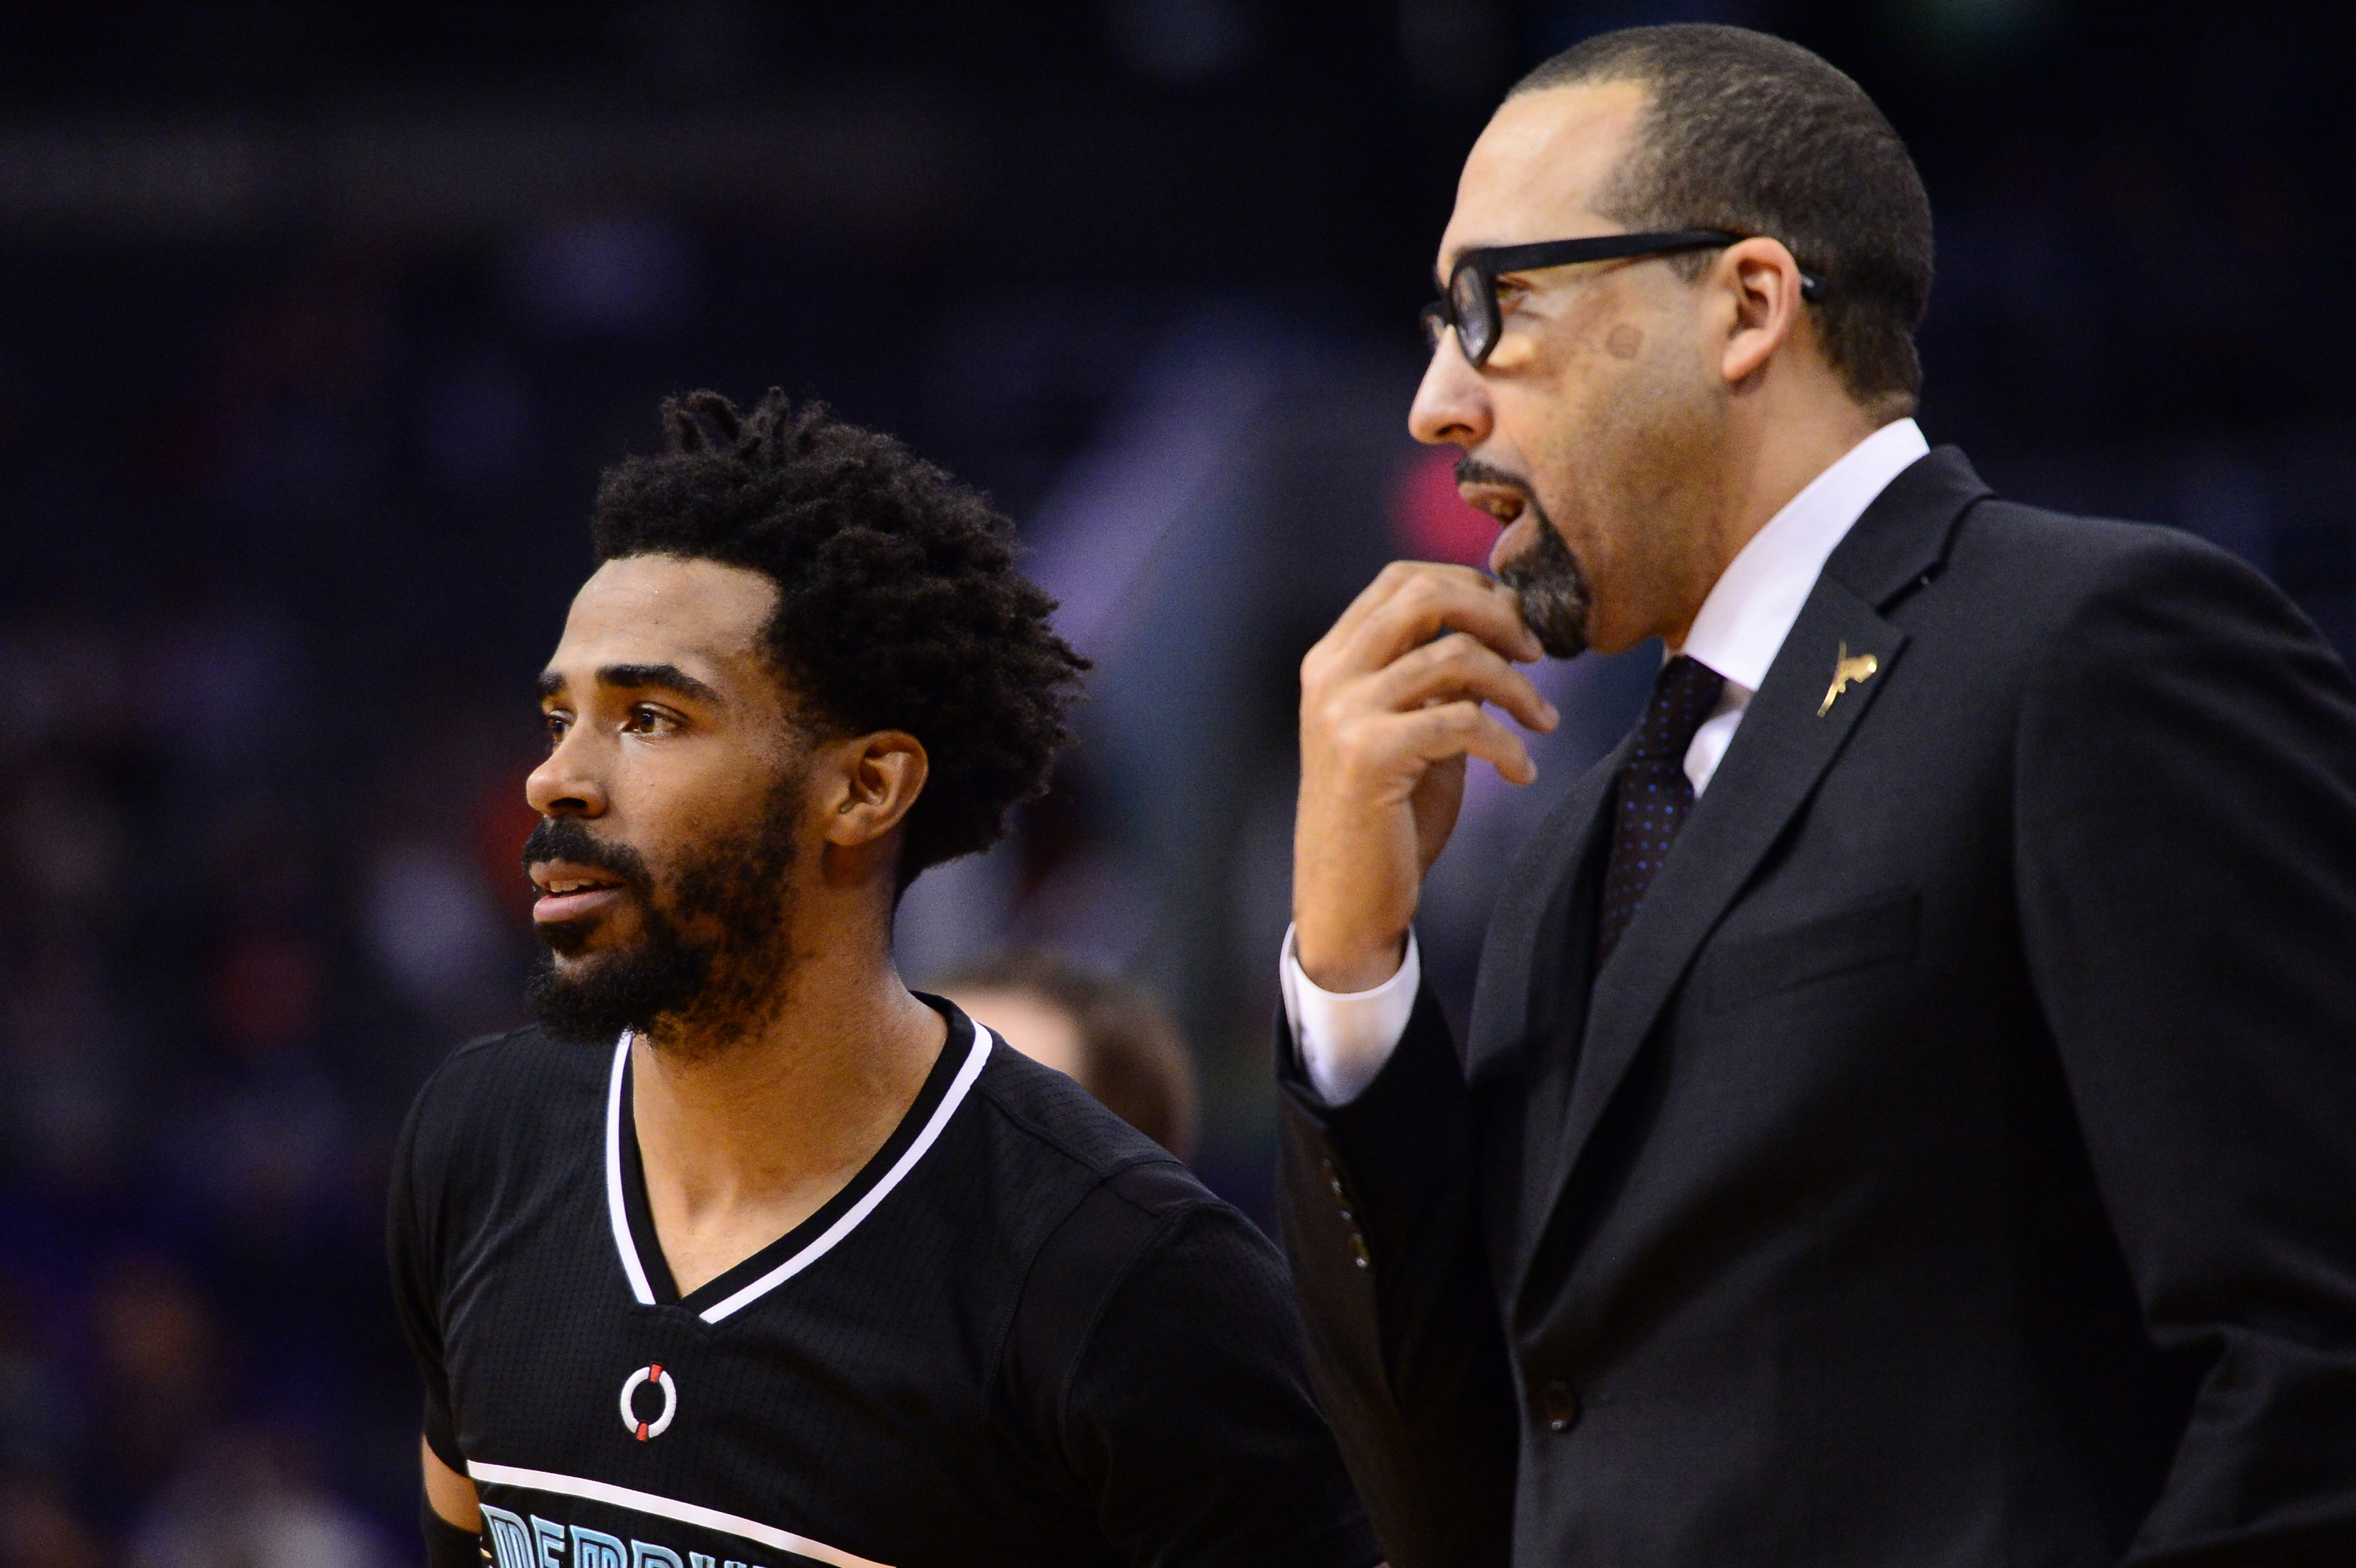 Jan 30, 2017; Phoenix, AZ, USA; Memphis Grizzlies guard Mike Conley (11) listens to Memphis Grizzlies head coach David Fizdale in the second half of the NBA game against the Phoenix Suns at Talking Stick Resort Arena. The Memphis Grizzlies won 115-96. Mandatory Credit: Jennifer Stewart-USA TODAY Sports